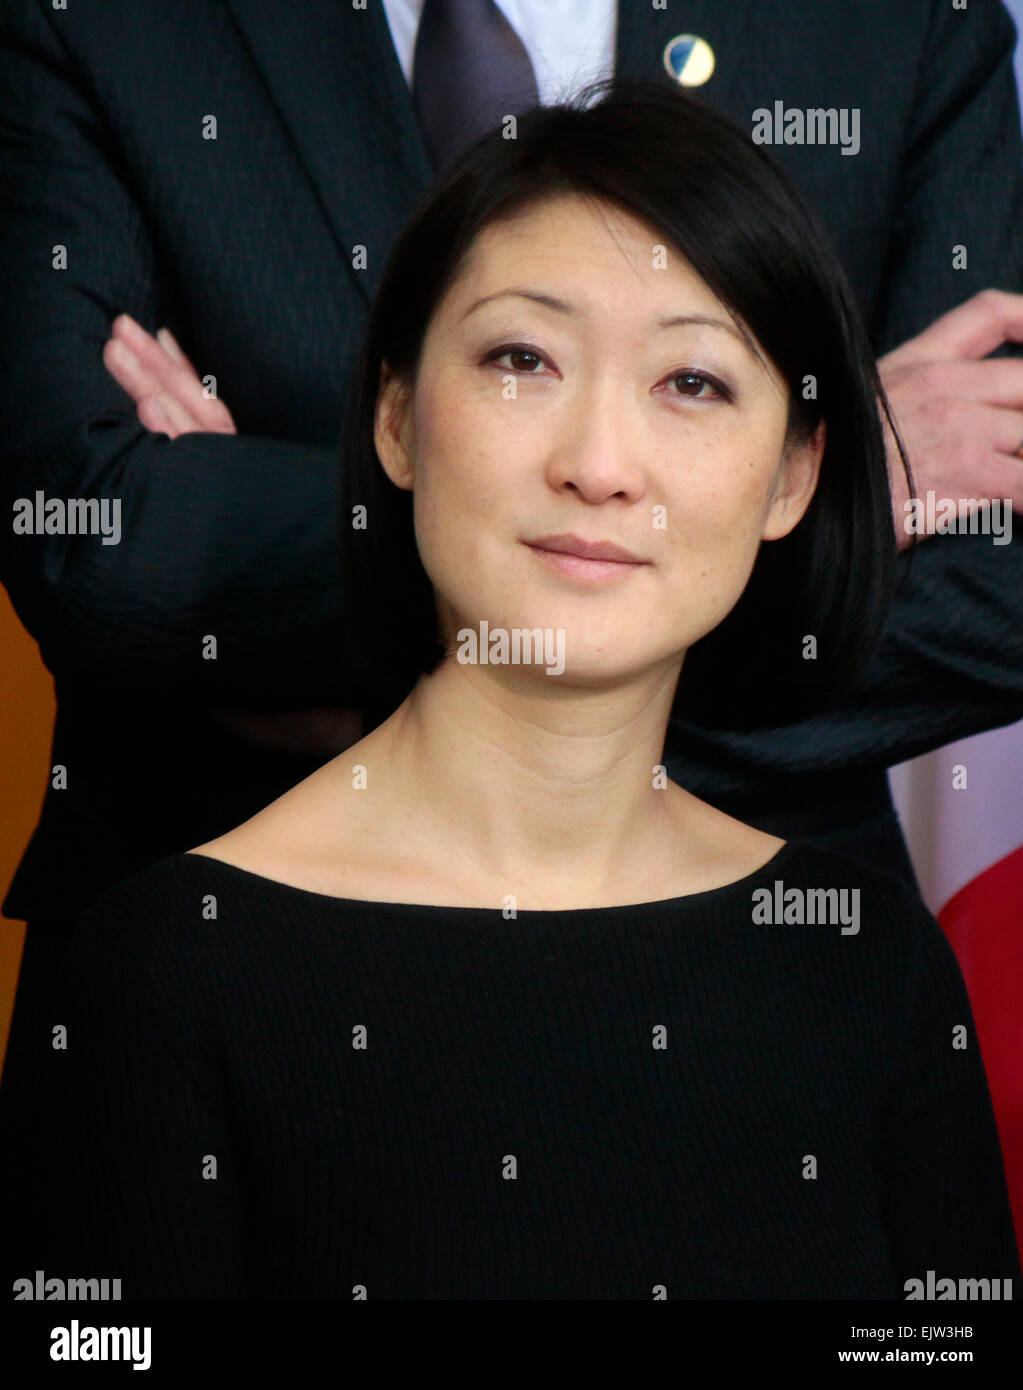 MARCH 31, 2015 - BERLIN: French culture minister Fleur Pellerin at a photo opp before a meeting of the German and - Stock Image